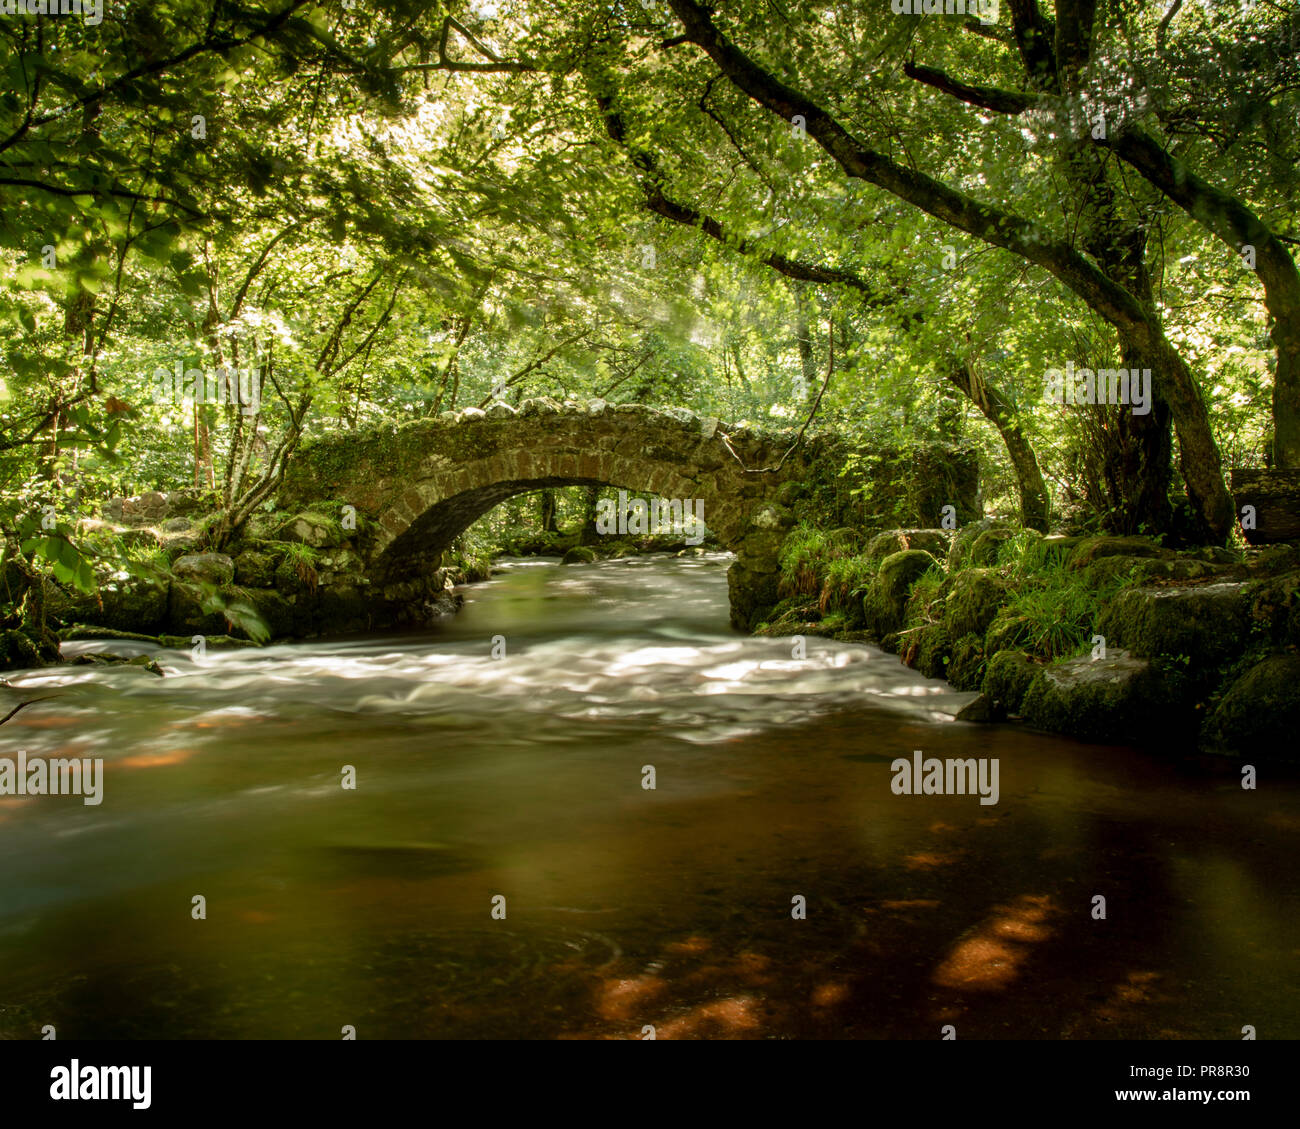 Hisley Bridge across the River Bovey on Dartmoor - Stock Image